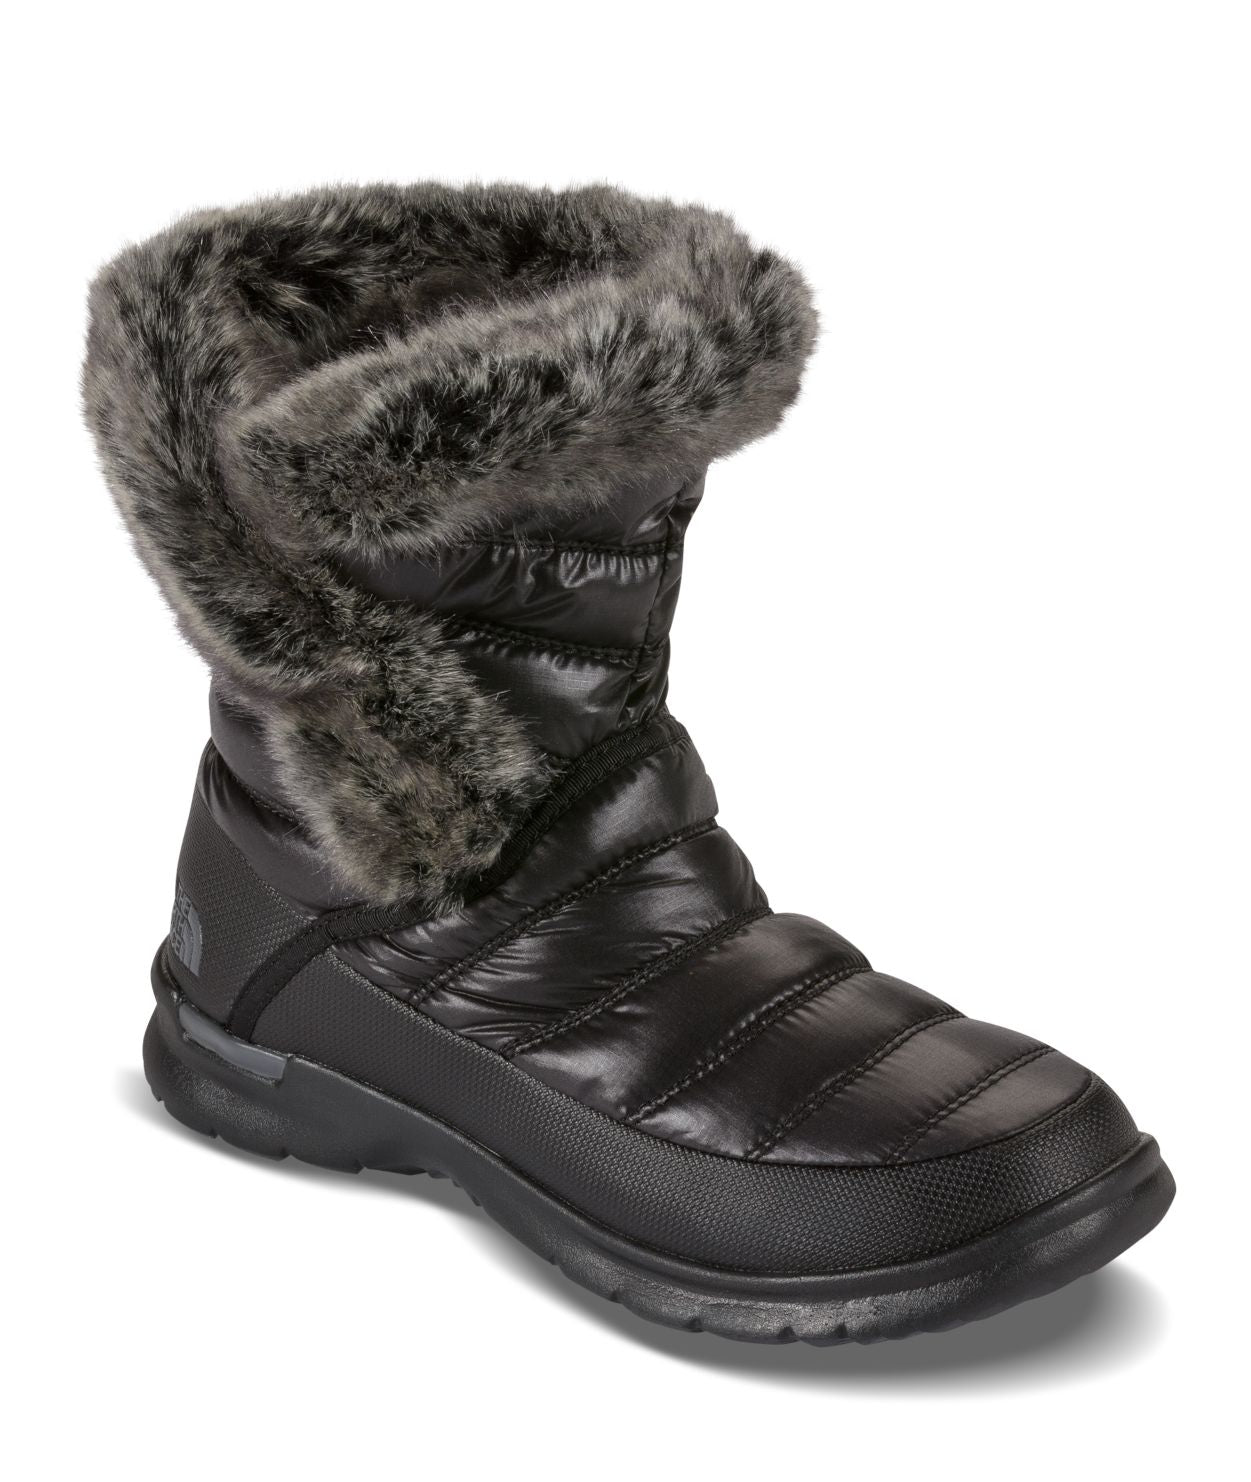 Women's Thermoball Microbaffle Bootsie II - Shiny TNF Black / Smoked Pearl Grey